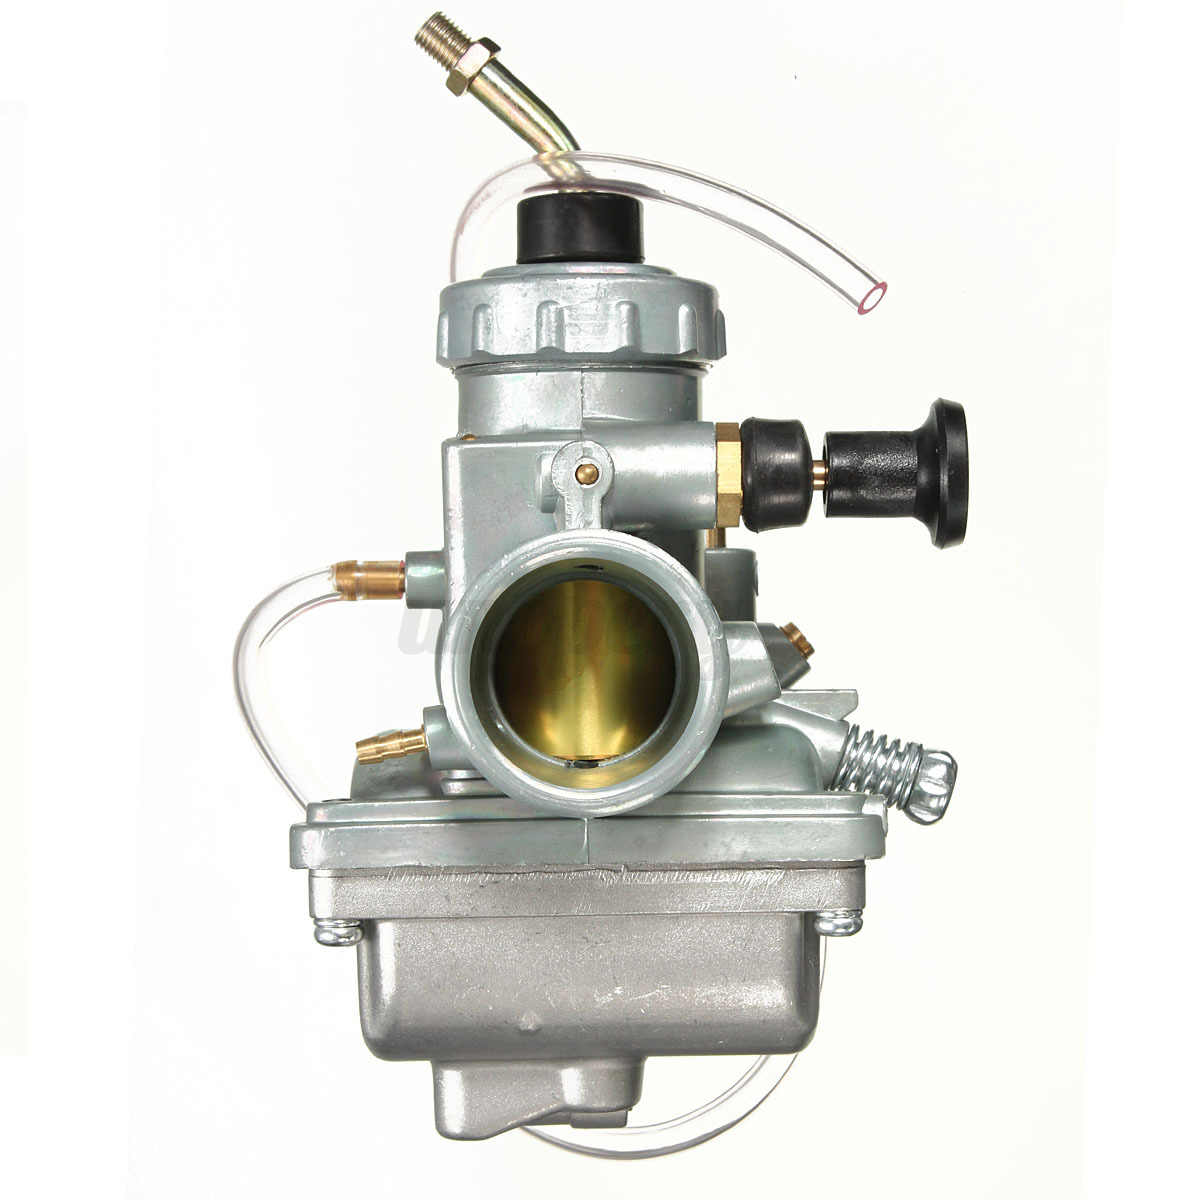 New carburetor carb for yamaha dt 175 dt175 1979 1981 for 1979 yamaha yz80 for sale